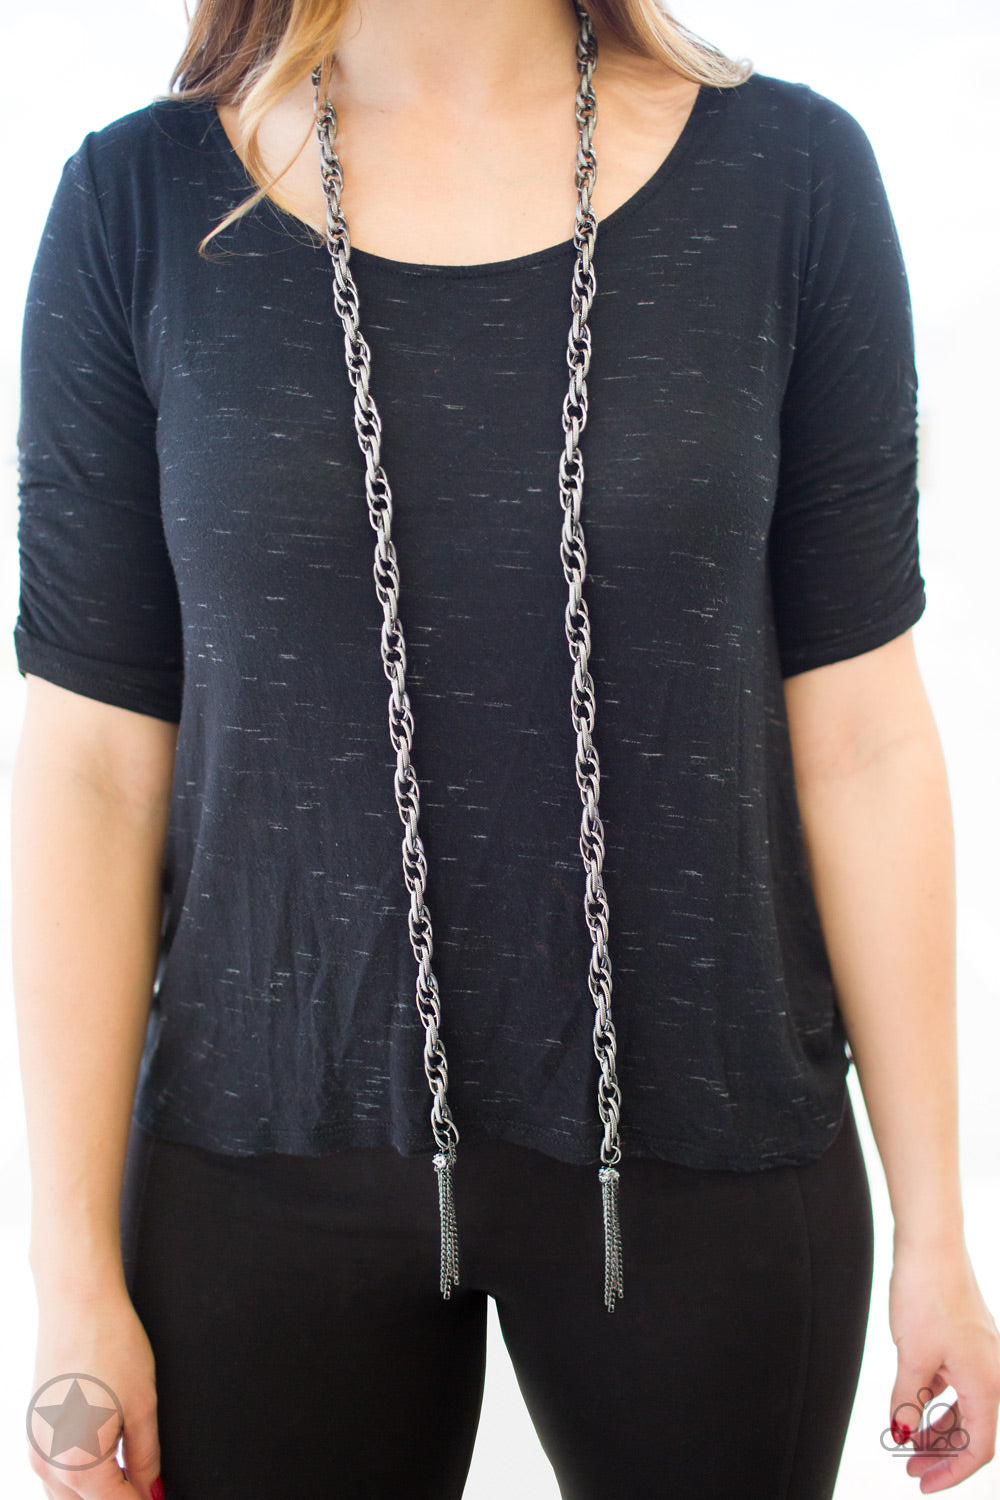 SCARFed for Attention Gunmetal Necklace